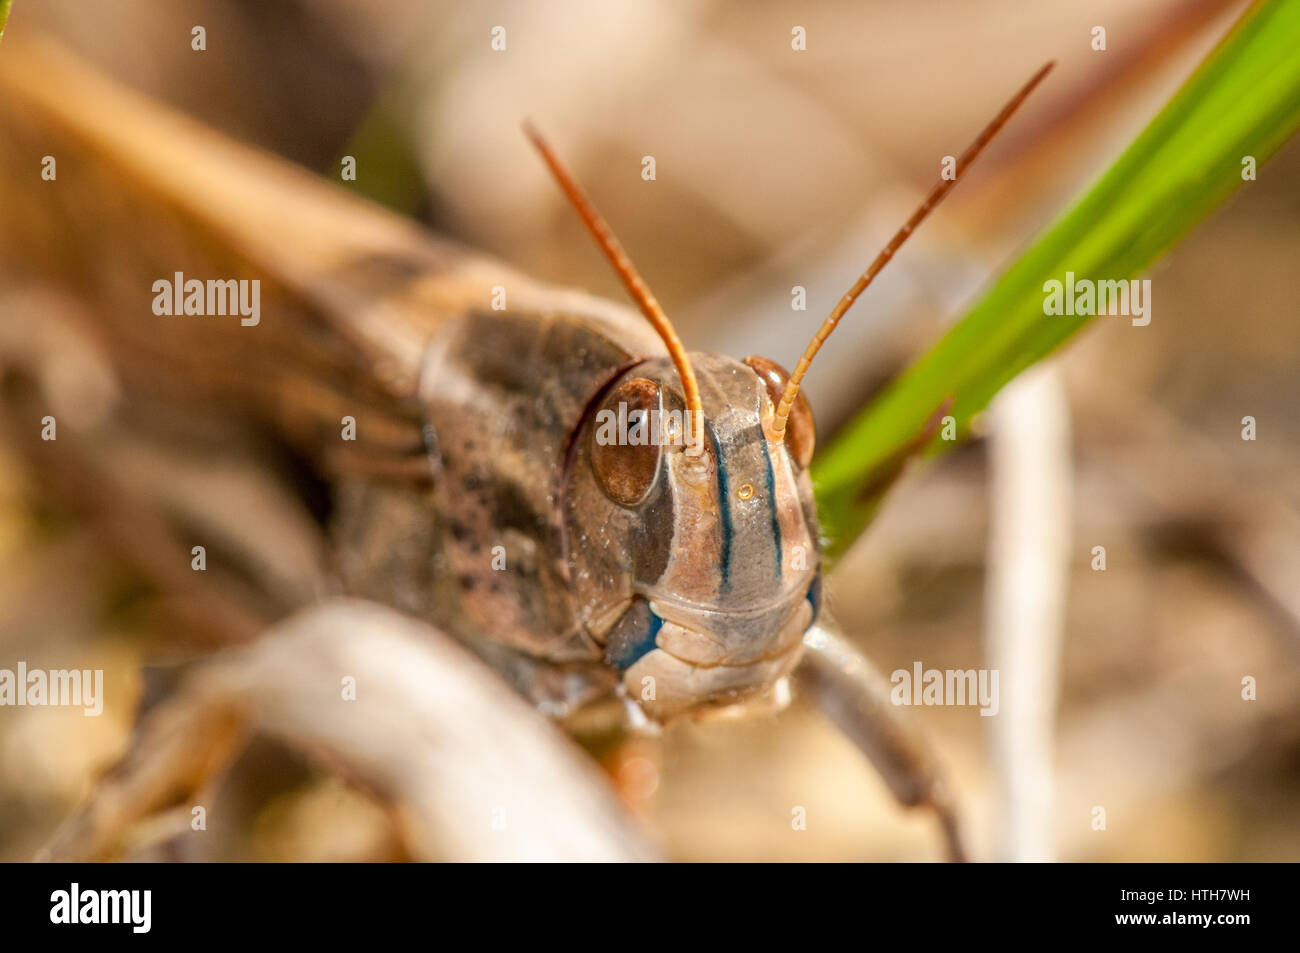 Close up view of an insect (Locusta migratoria cinerascens) - Stock Image